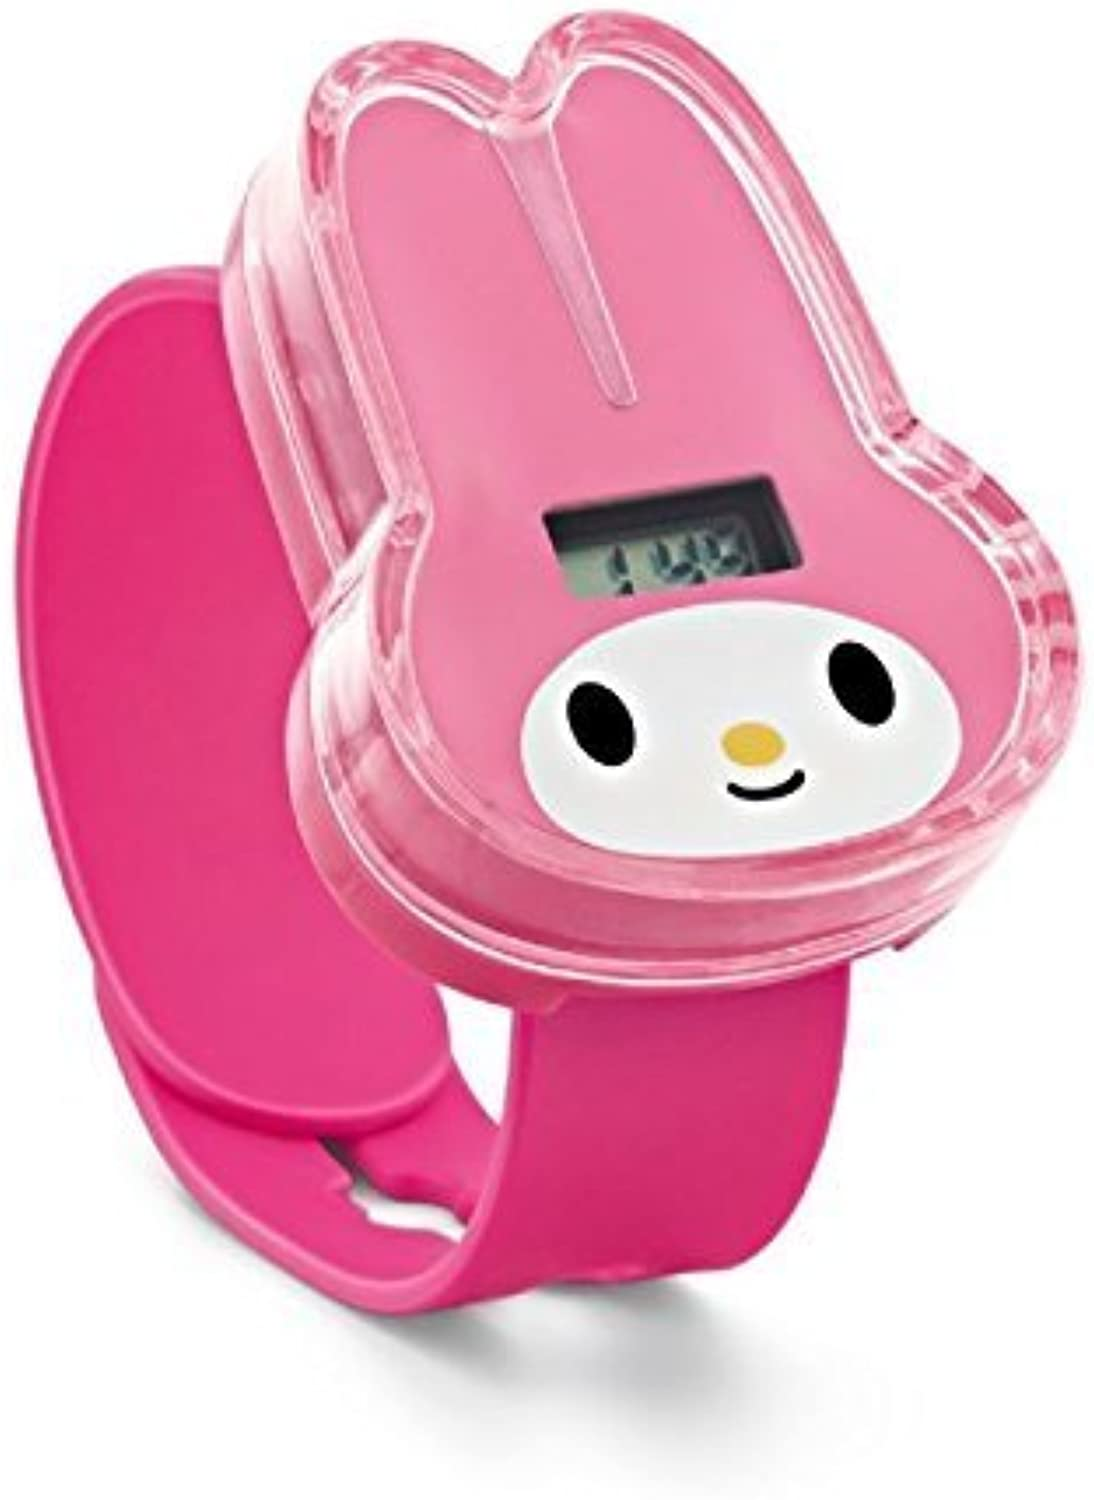 Mcdonalds Happy Meal Toy Hello Kitty Watch   2 My Melody Sanrio